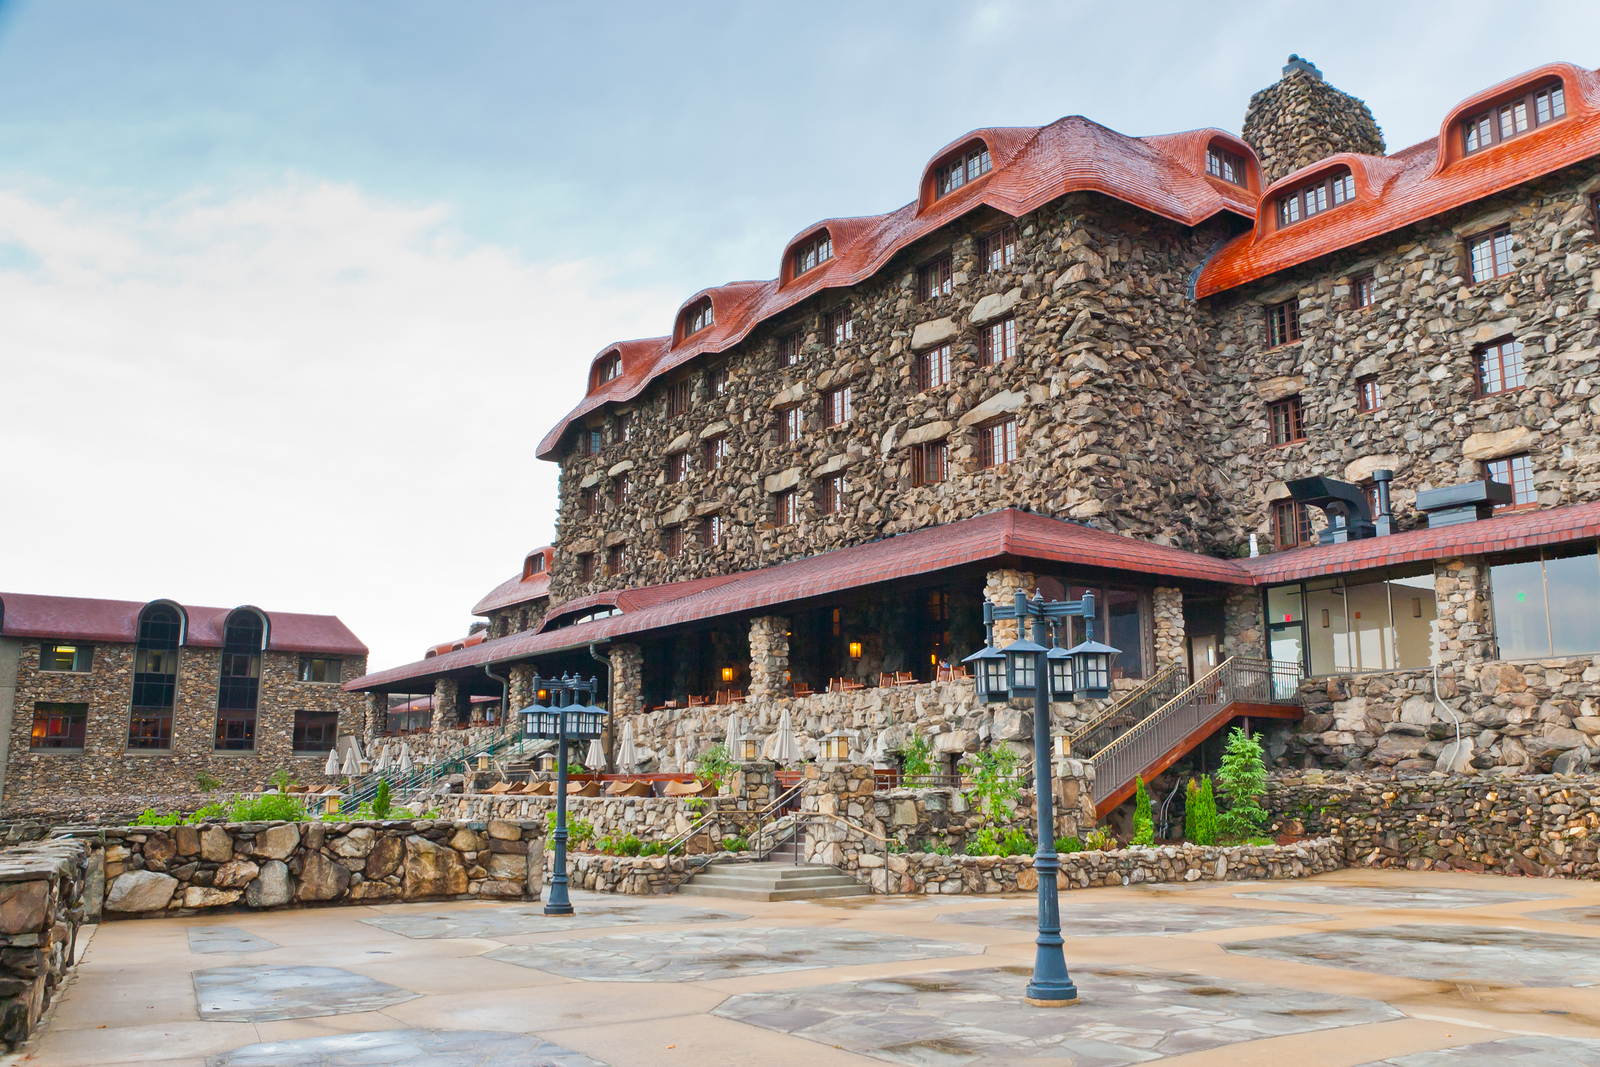 Asheville - SEP 3: The Omni Grove Park Inn Resort Hotel on September 3 2013 in Asheville North CarolinaUSA. The old historic hotel opened in 1913 and has been visited by many United States presidents.